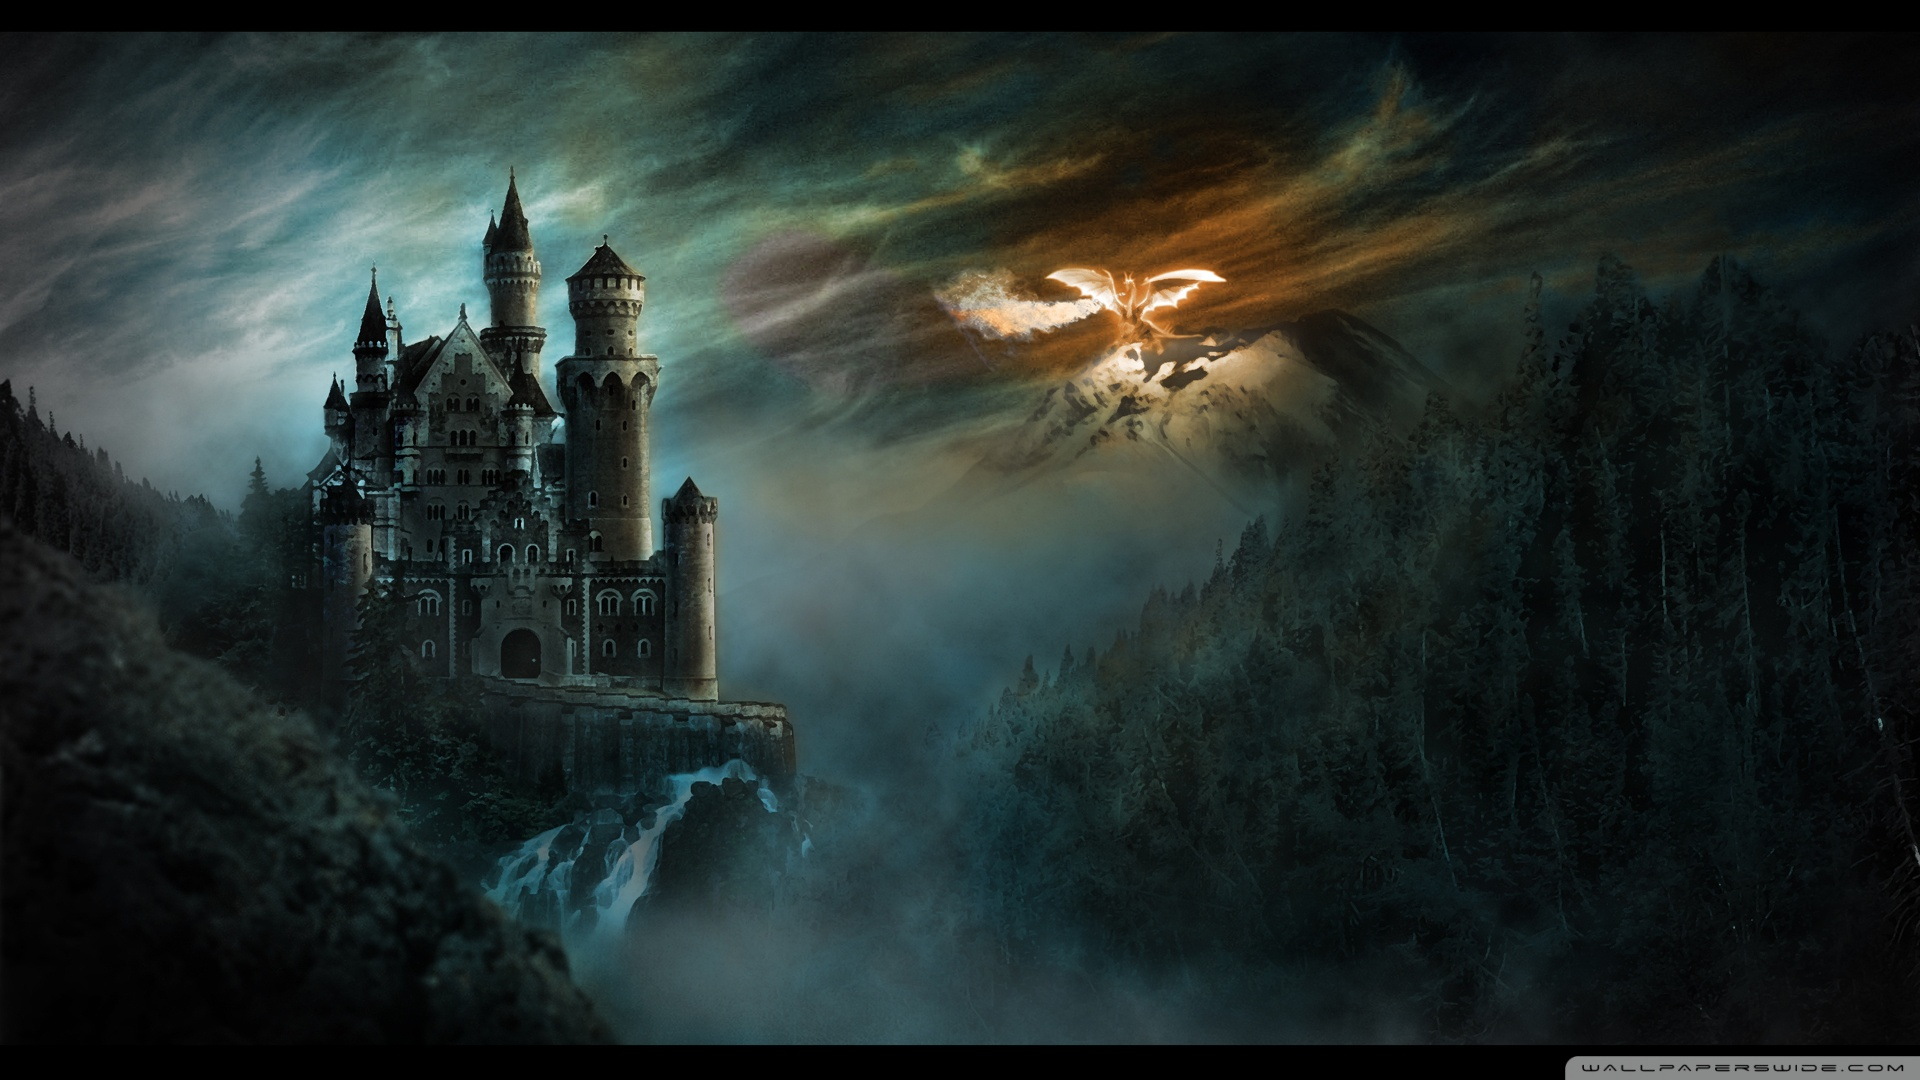 Dragon wallpaper 1920x1080 wallpapersafari - Dragon backgrounds 1920x1080 ...